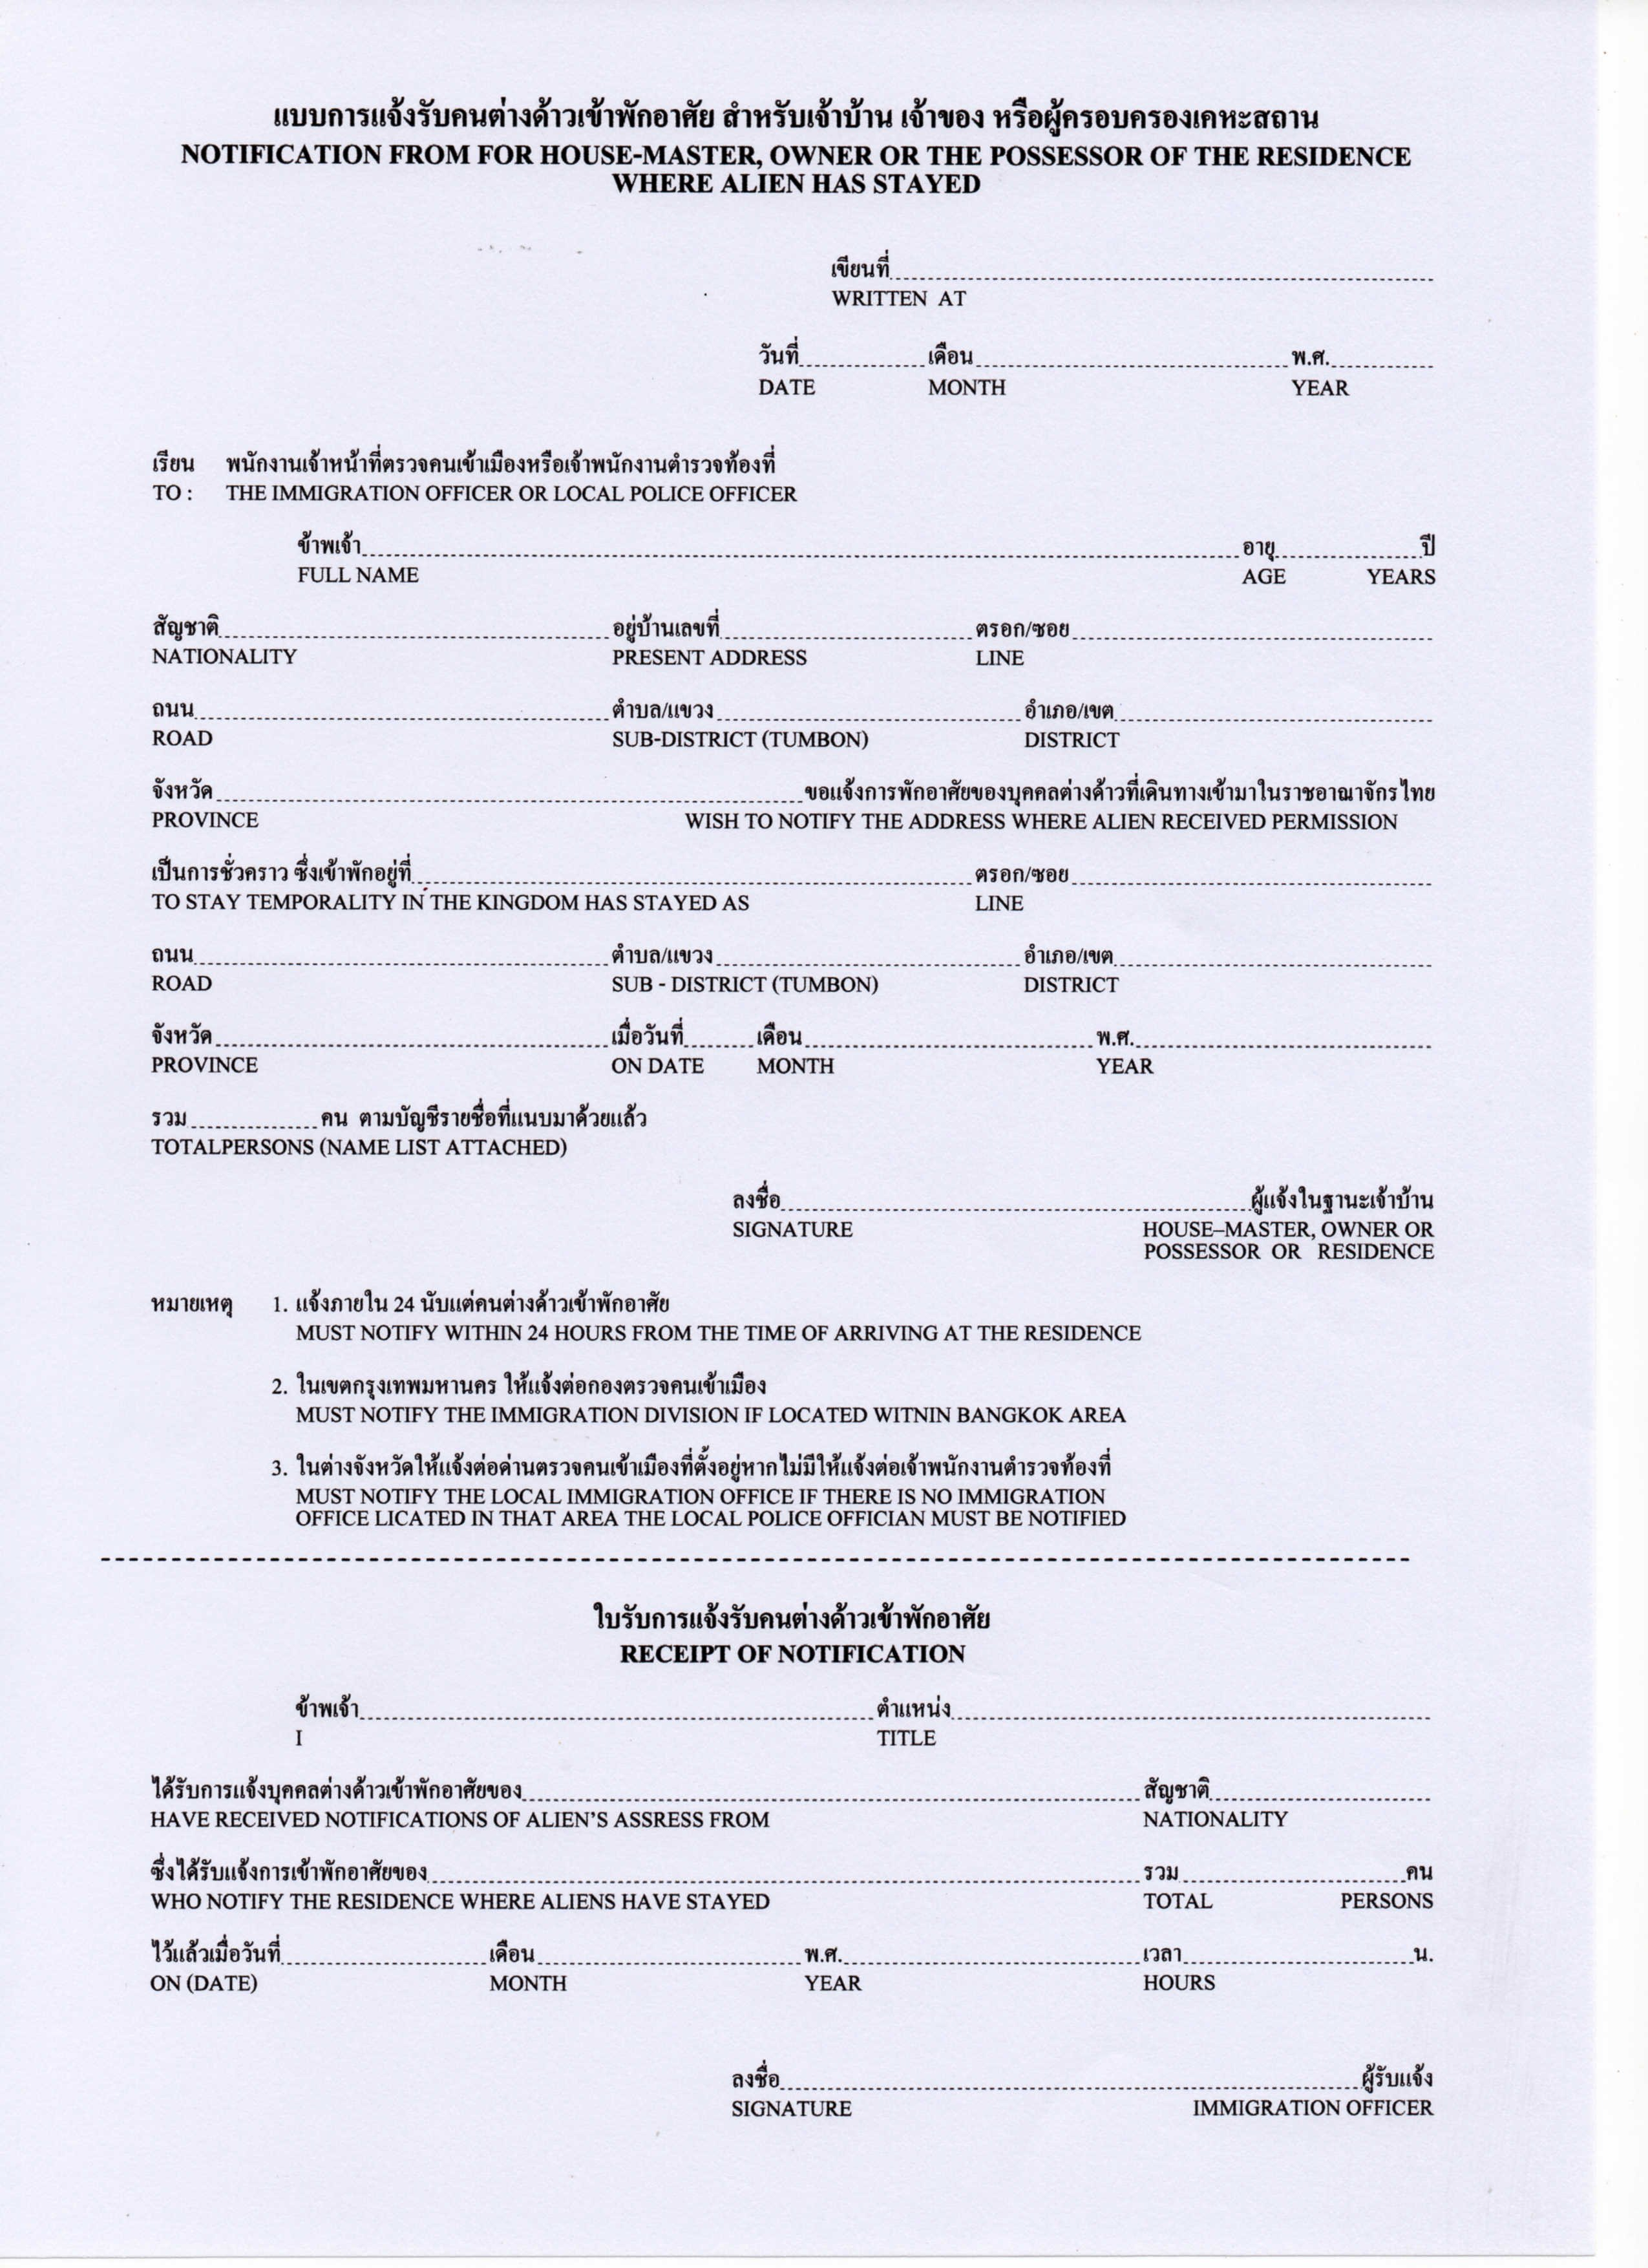 "power of attorney form notification form for where alien has stay  Certificate of Residence"" - I Need To Get New One - Phuket ..."